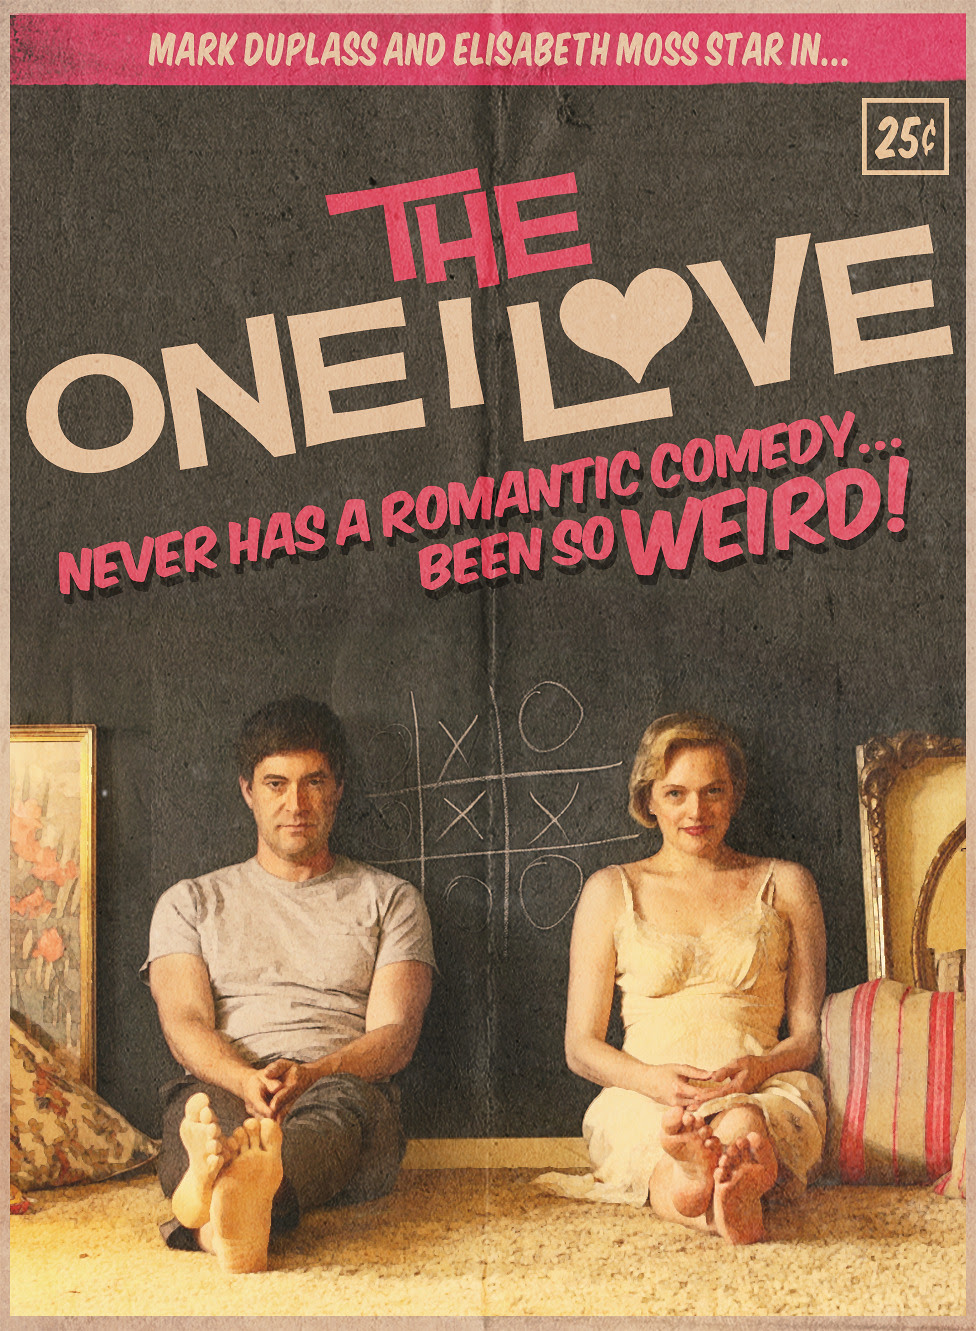 The One I Love, starring Mark Duplass and Elizabeth Moss